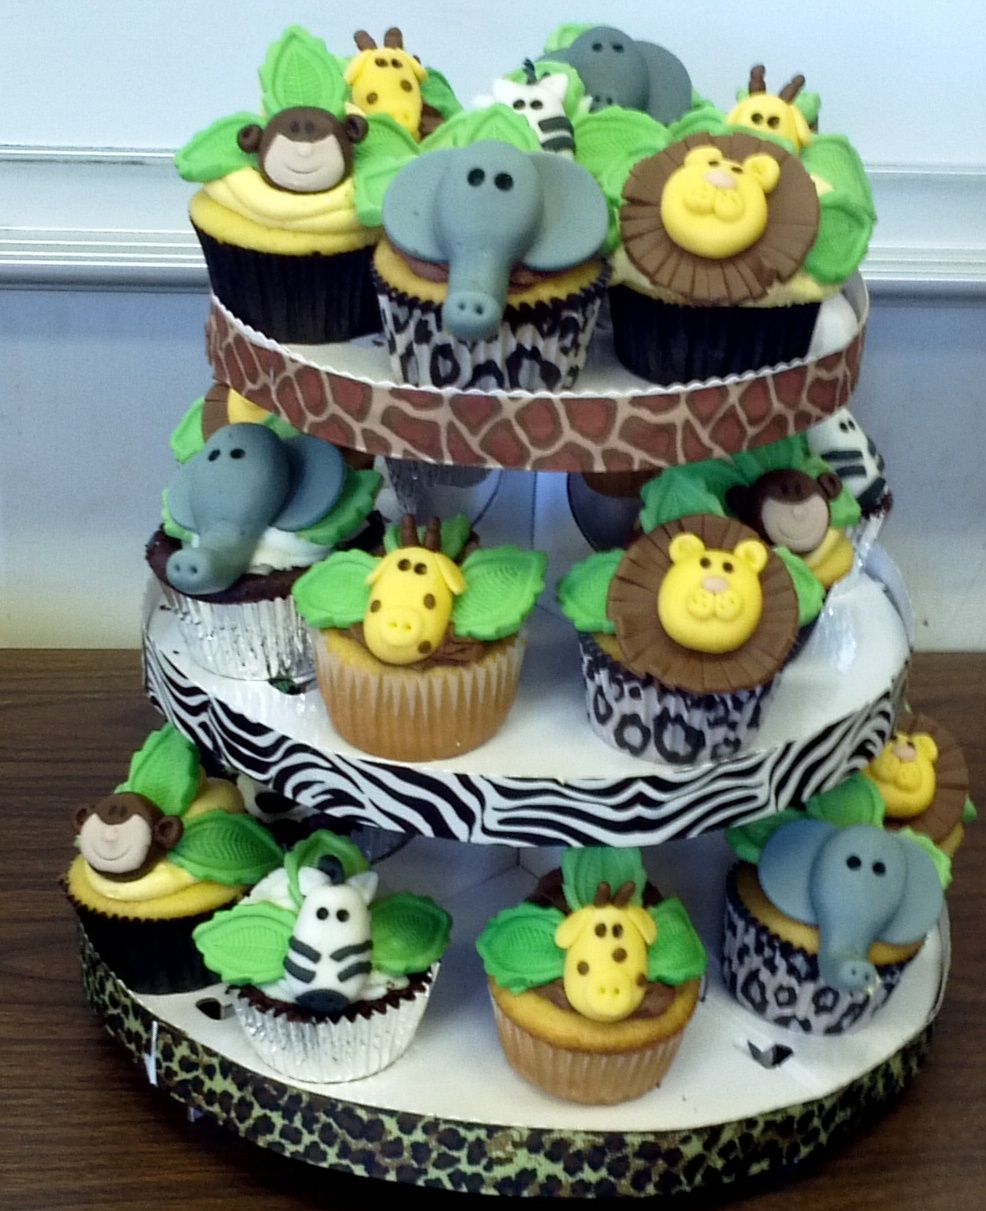 Safari Themed Baby Shower Cupcakes - Mom to be wanted a safari themed baby  shower.